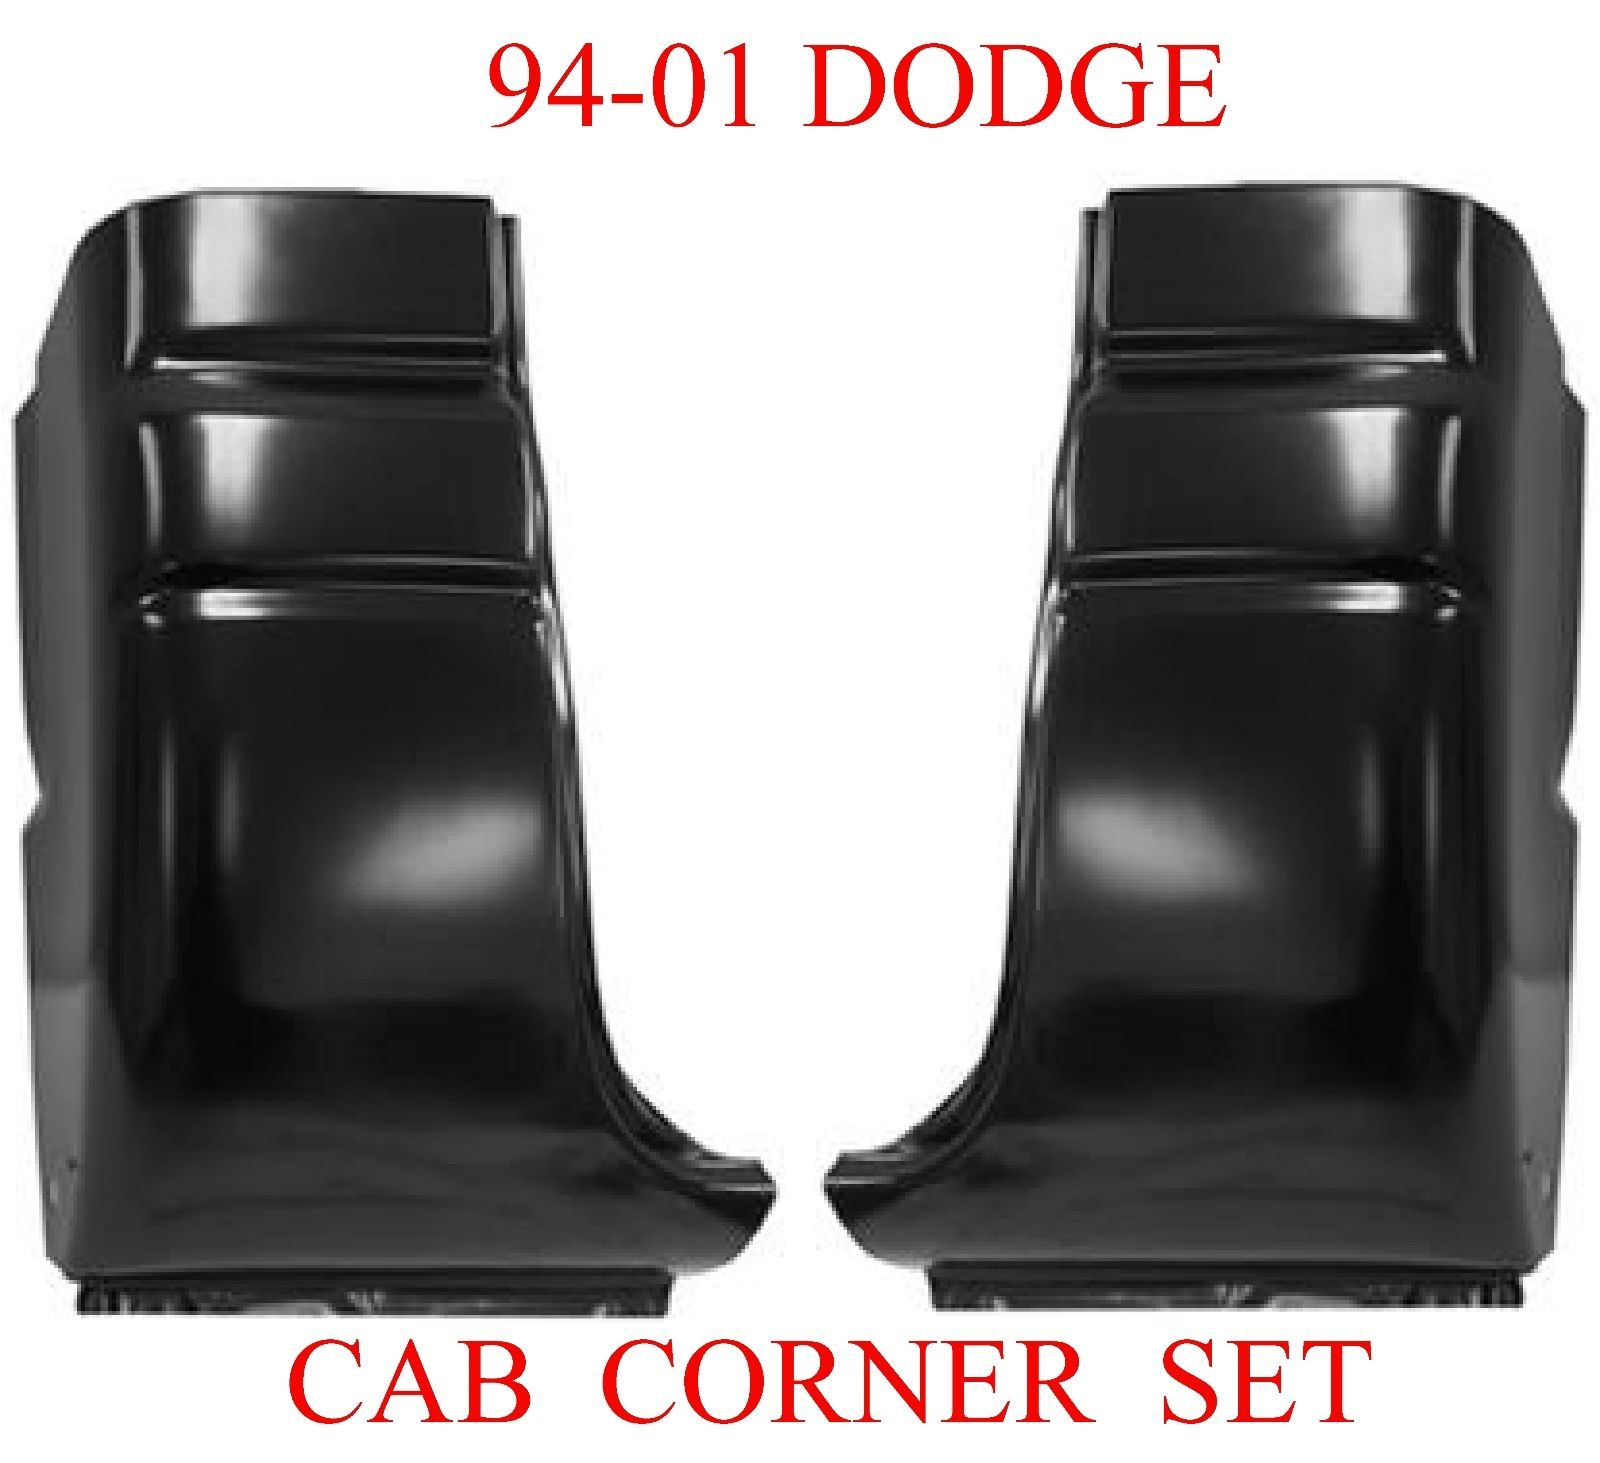 94-01 Dodge Ram Regular Cab Corner Set